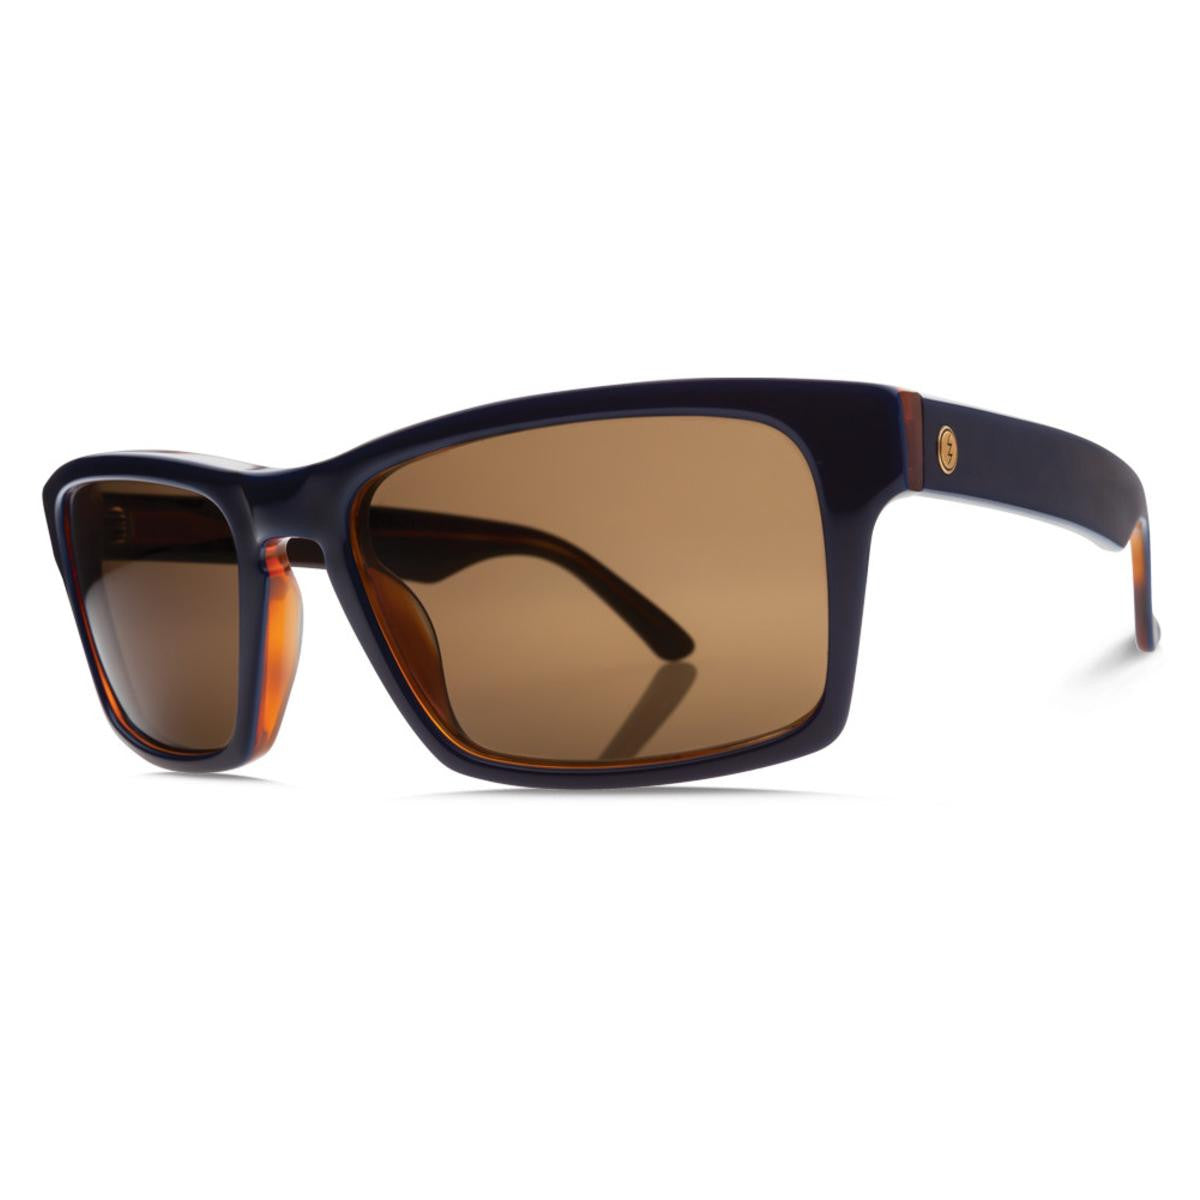 Electric Hardknox Sunglasses Multiple Colors New